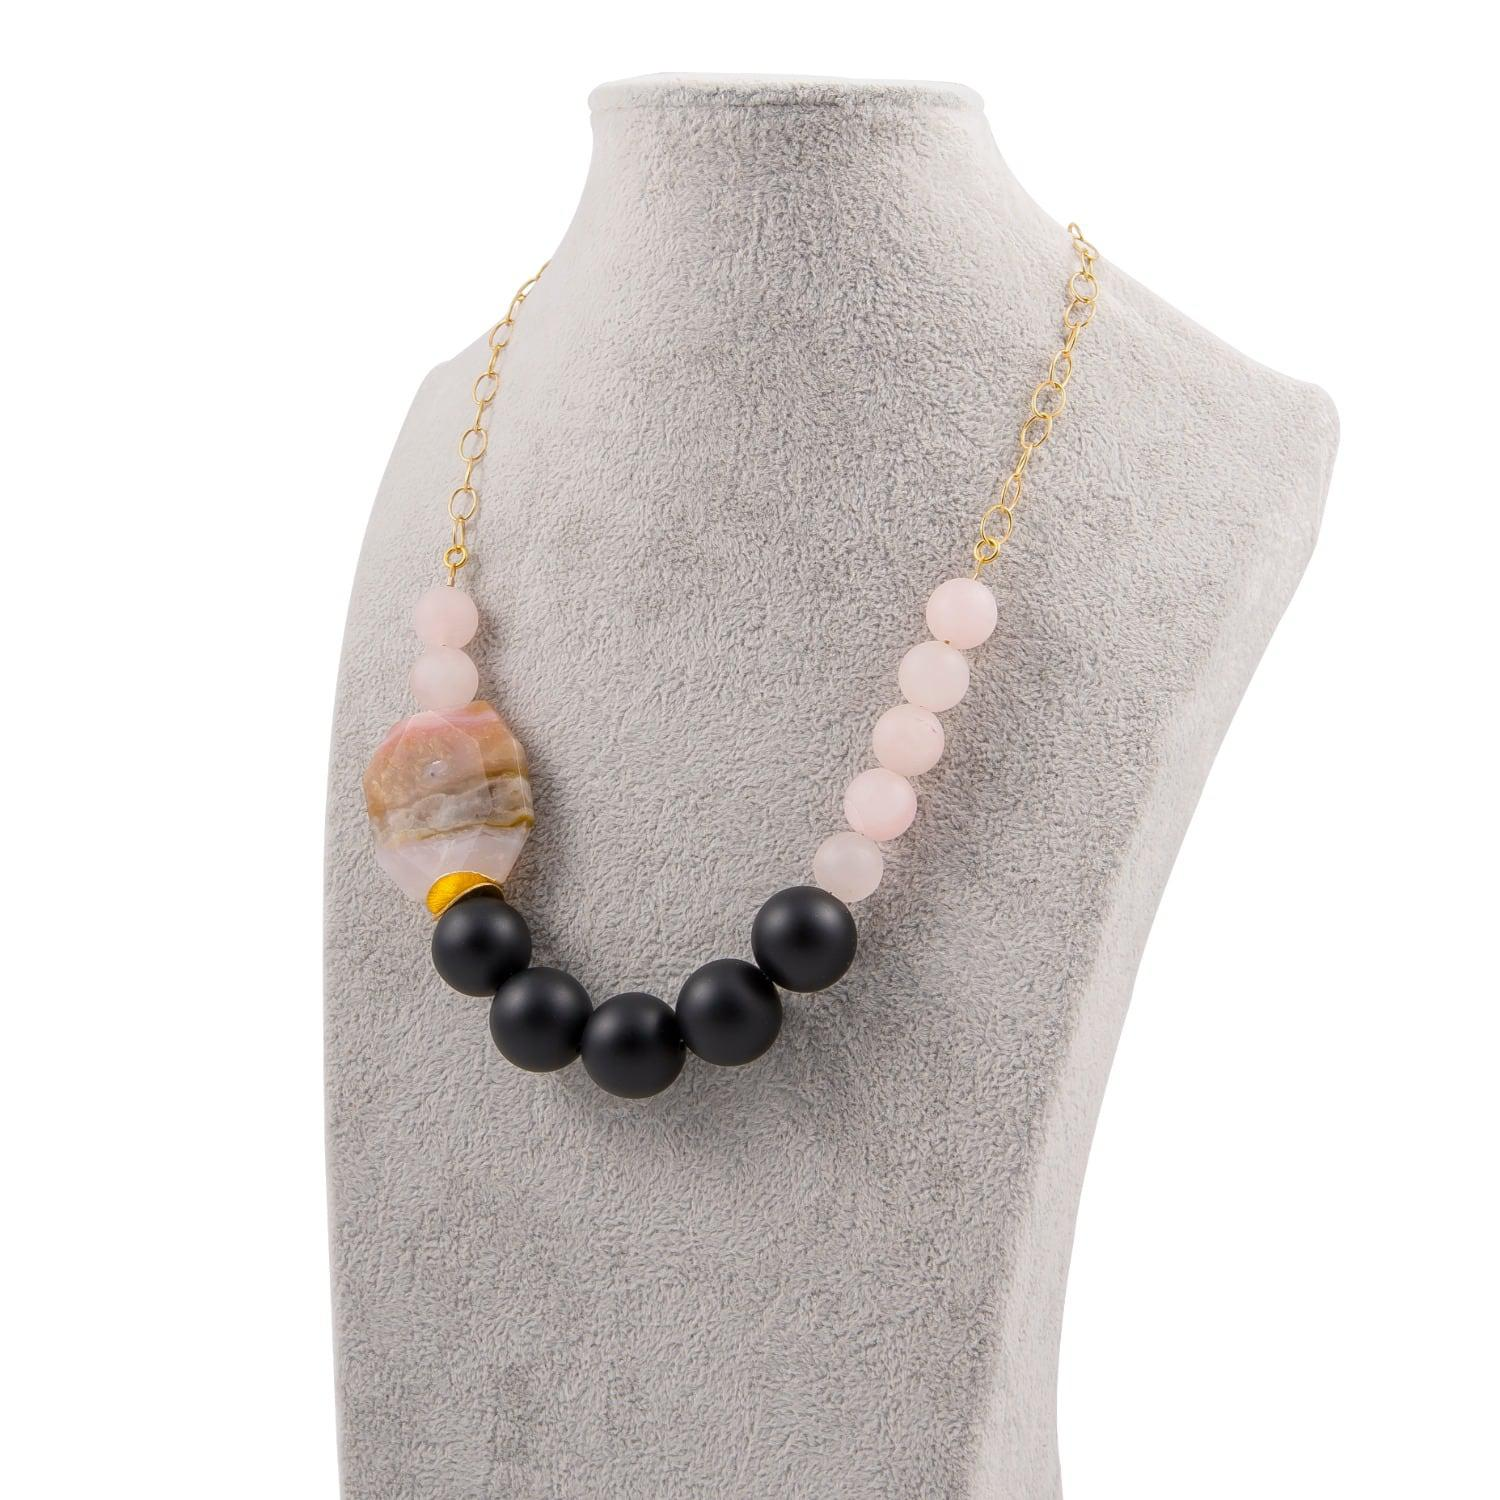 Magpie Rose Peruvian Pink Opal & Black Onyx Statement Necklace